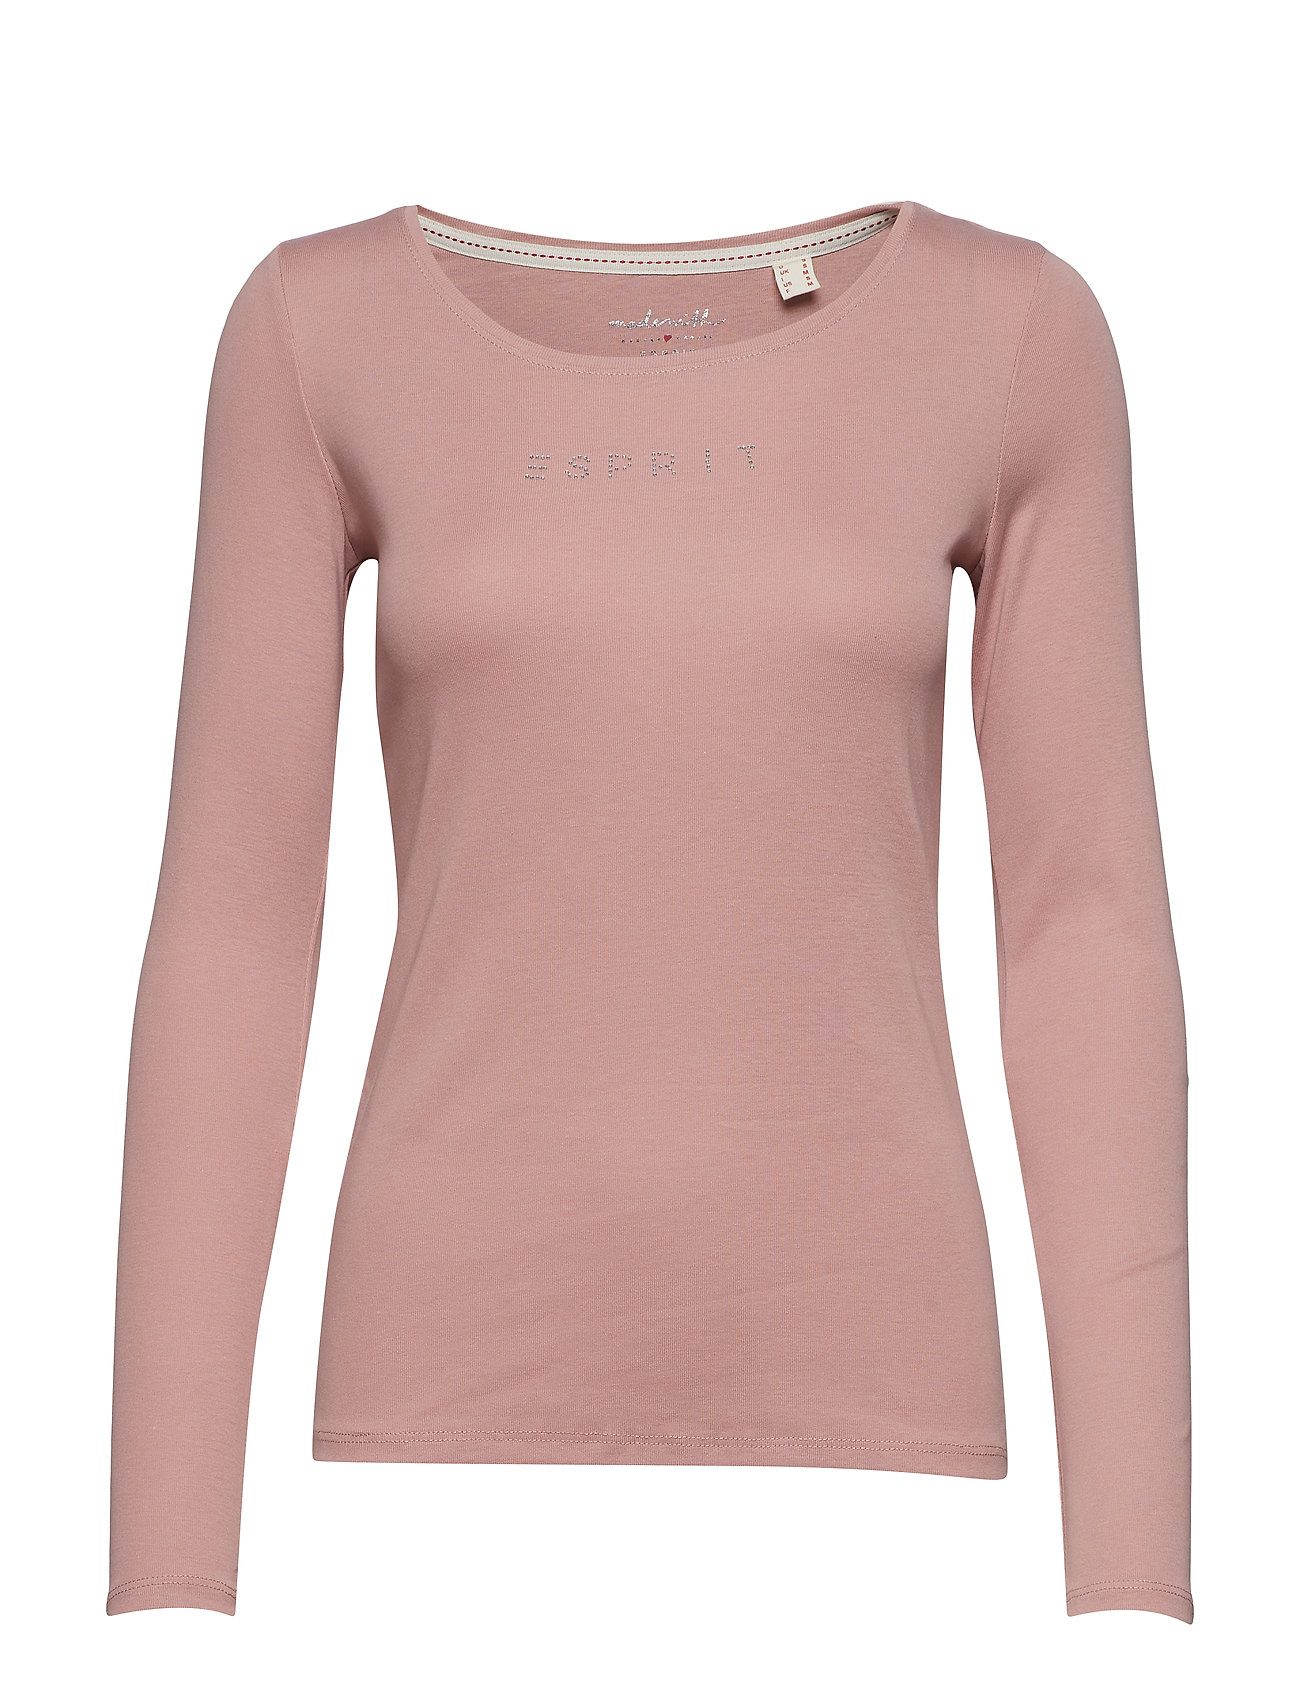 shirtsold T 3Esprit Pink shirtsold T Casual PkuOiZTX